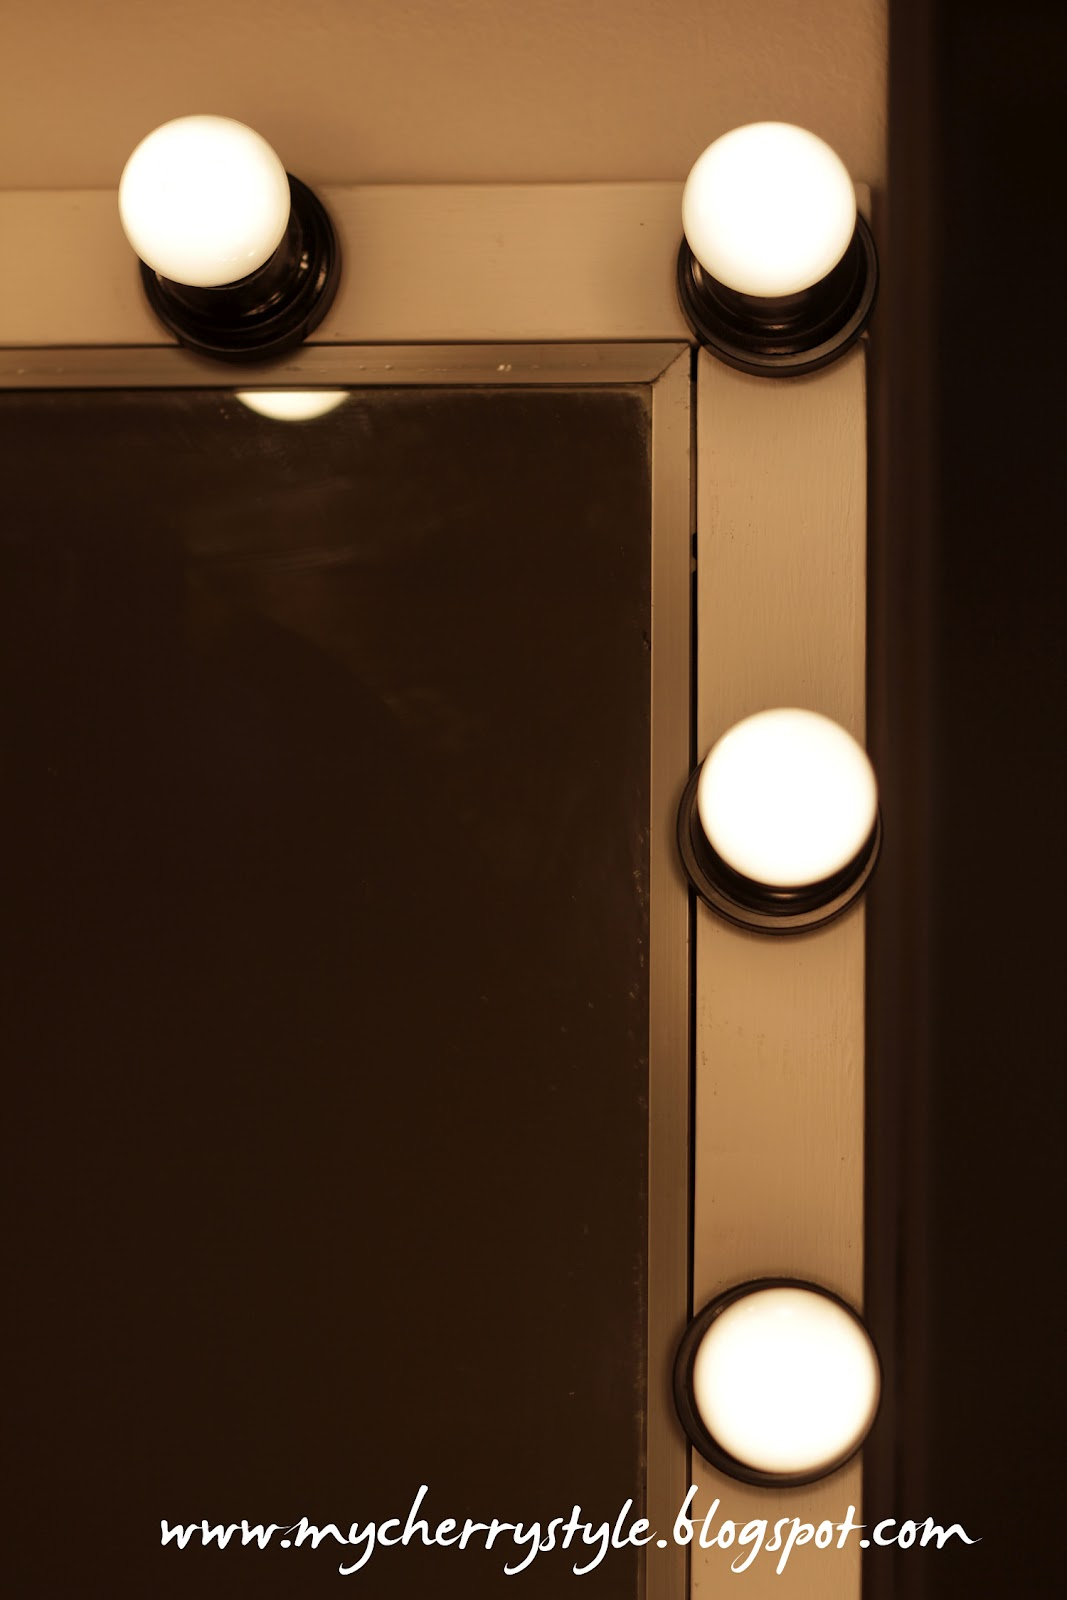 Diy Led Mirror Frame Diy Hollywood Style Mirror With Lights Tutorial From